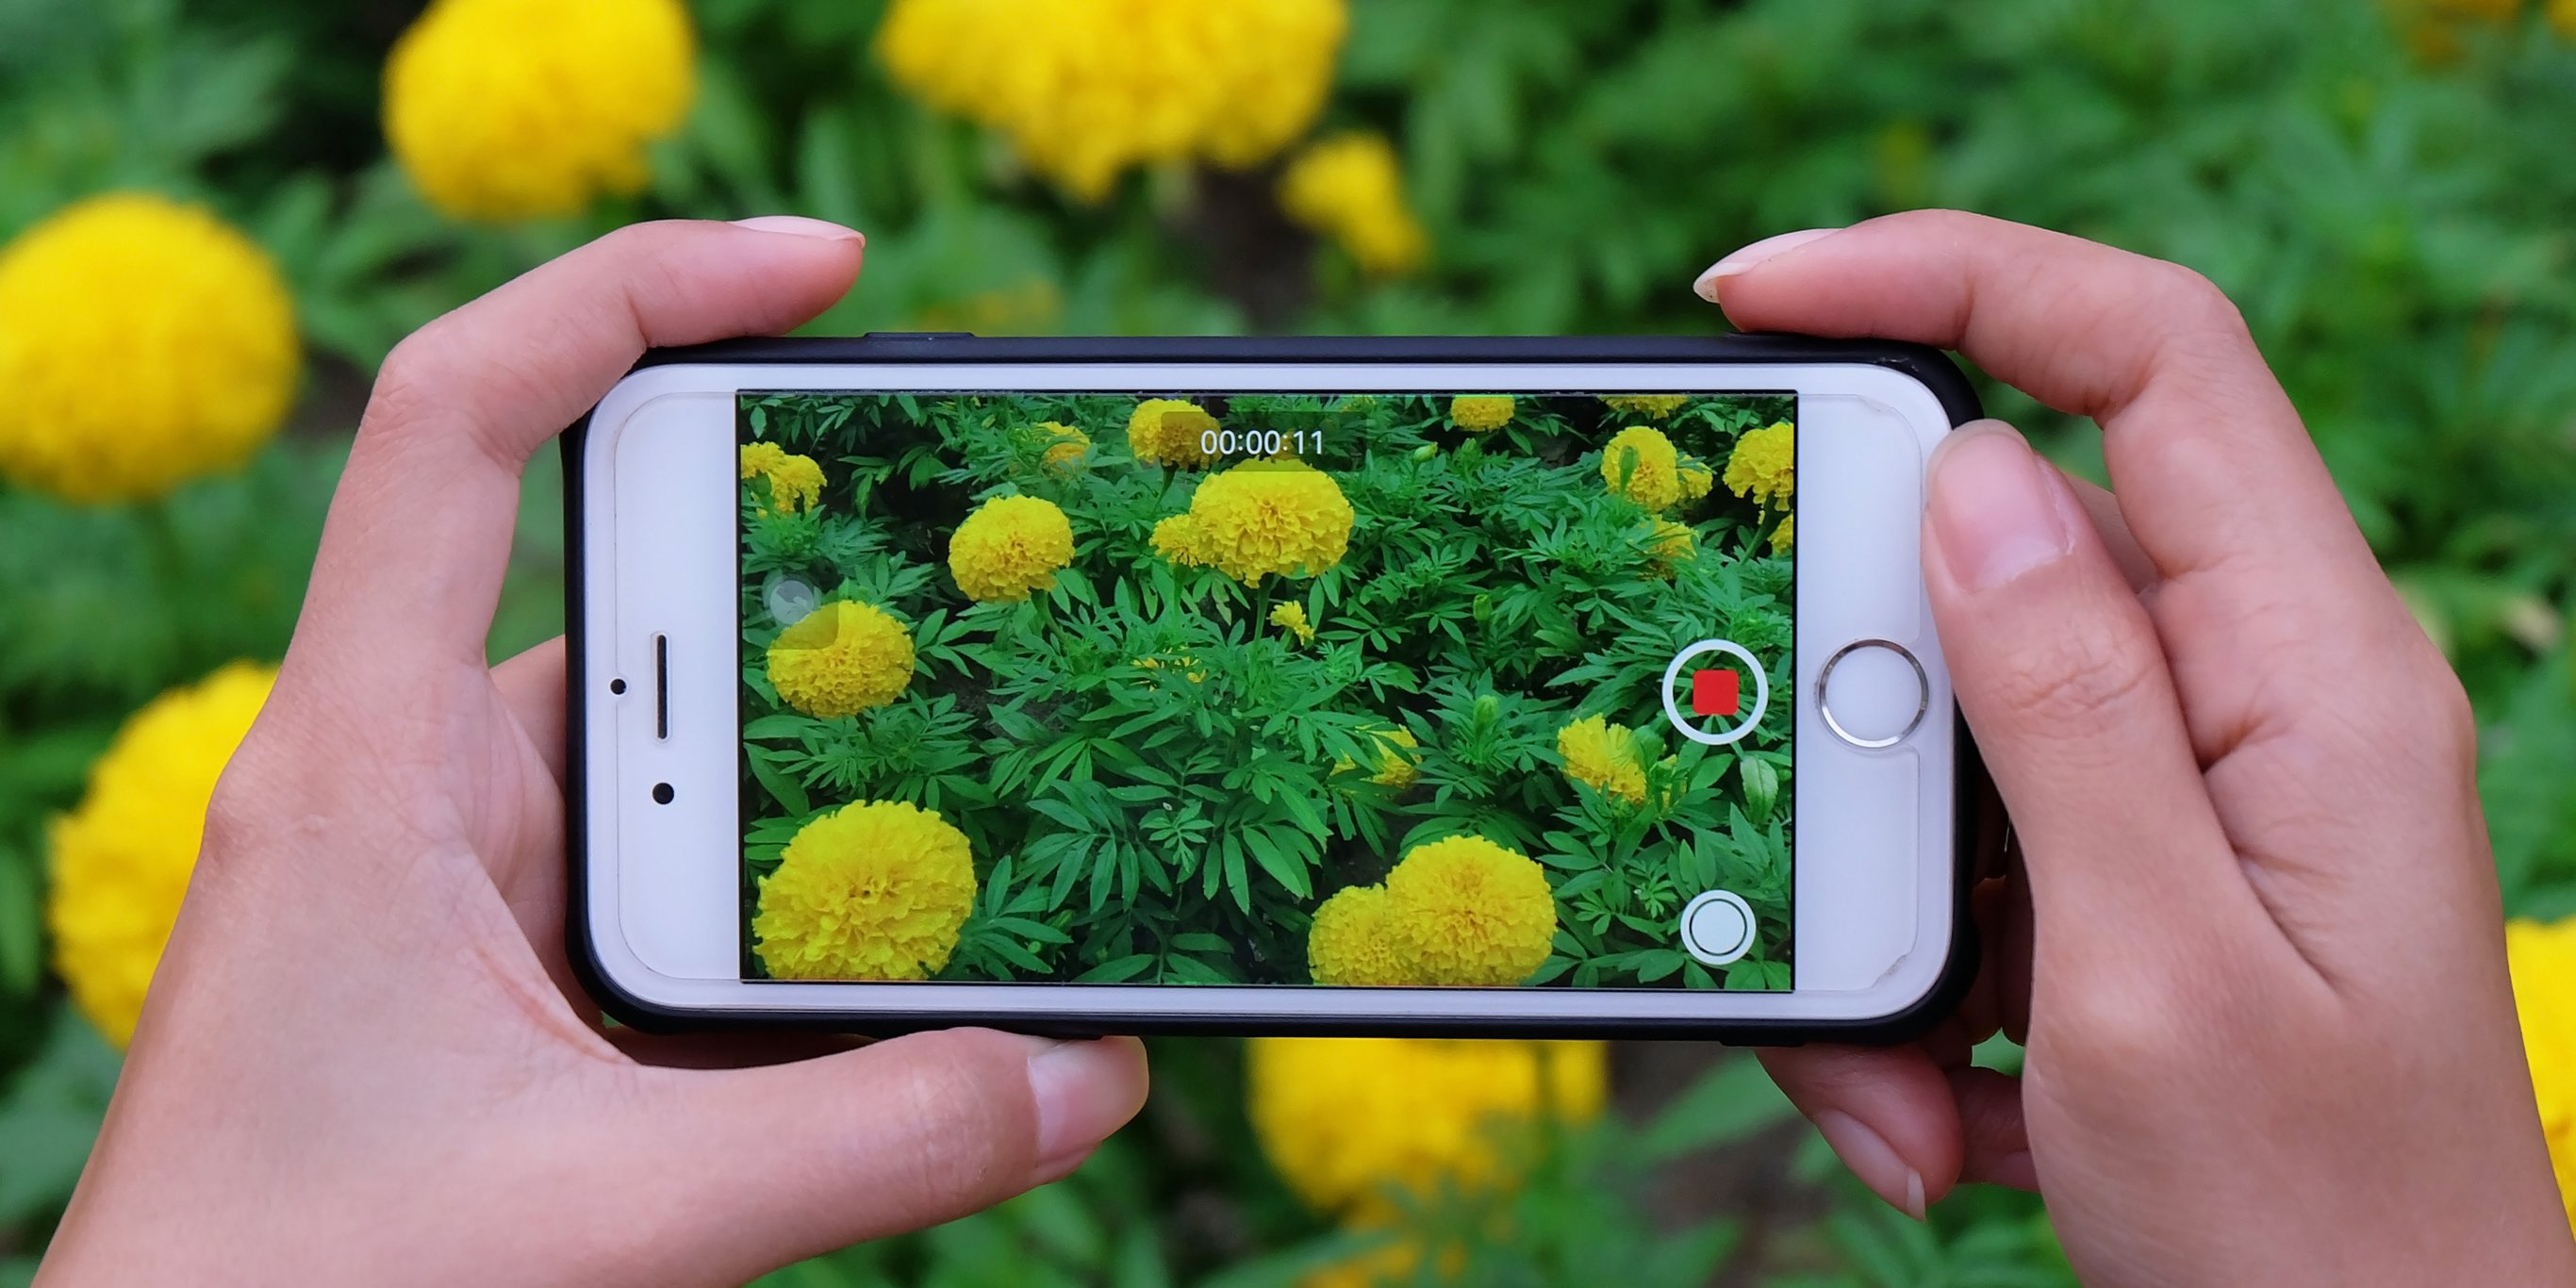 How to brighten a video on your iPhone before or while recording, or by using a free third-party app after recording